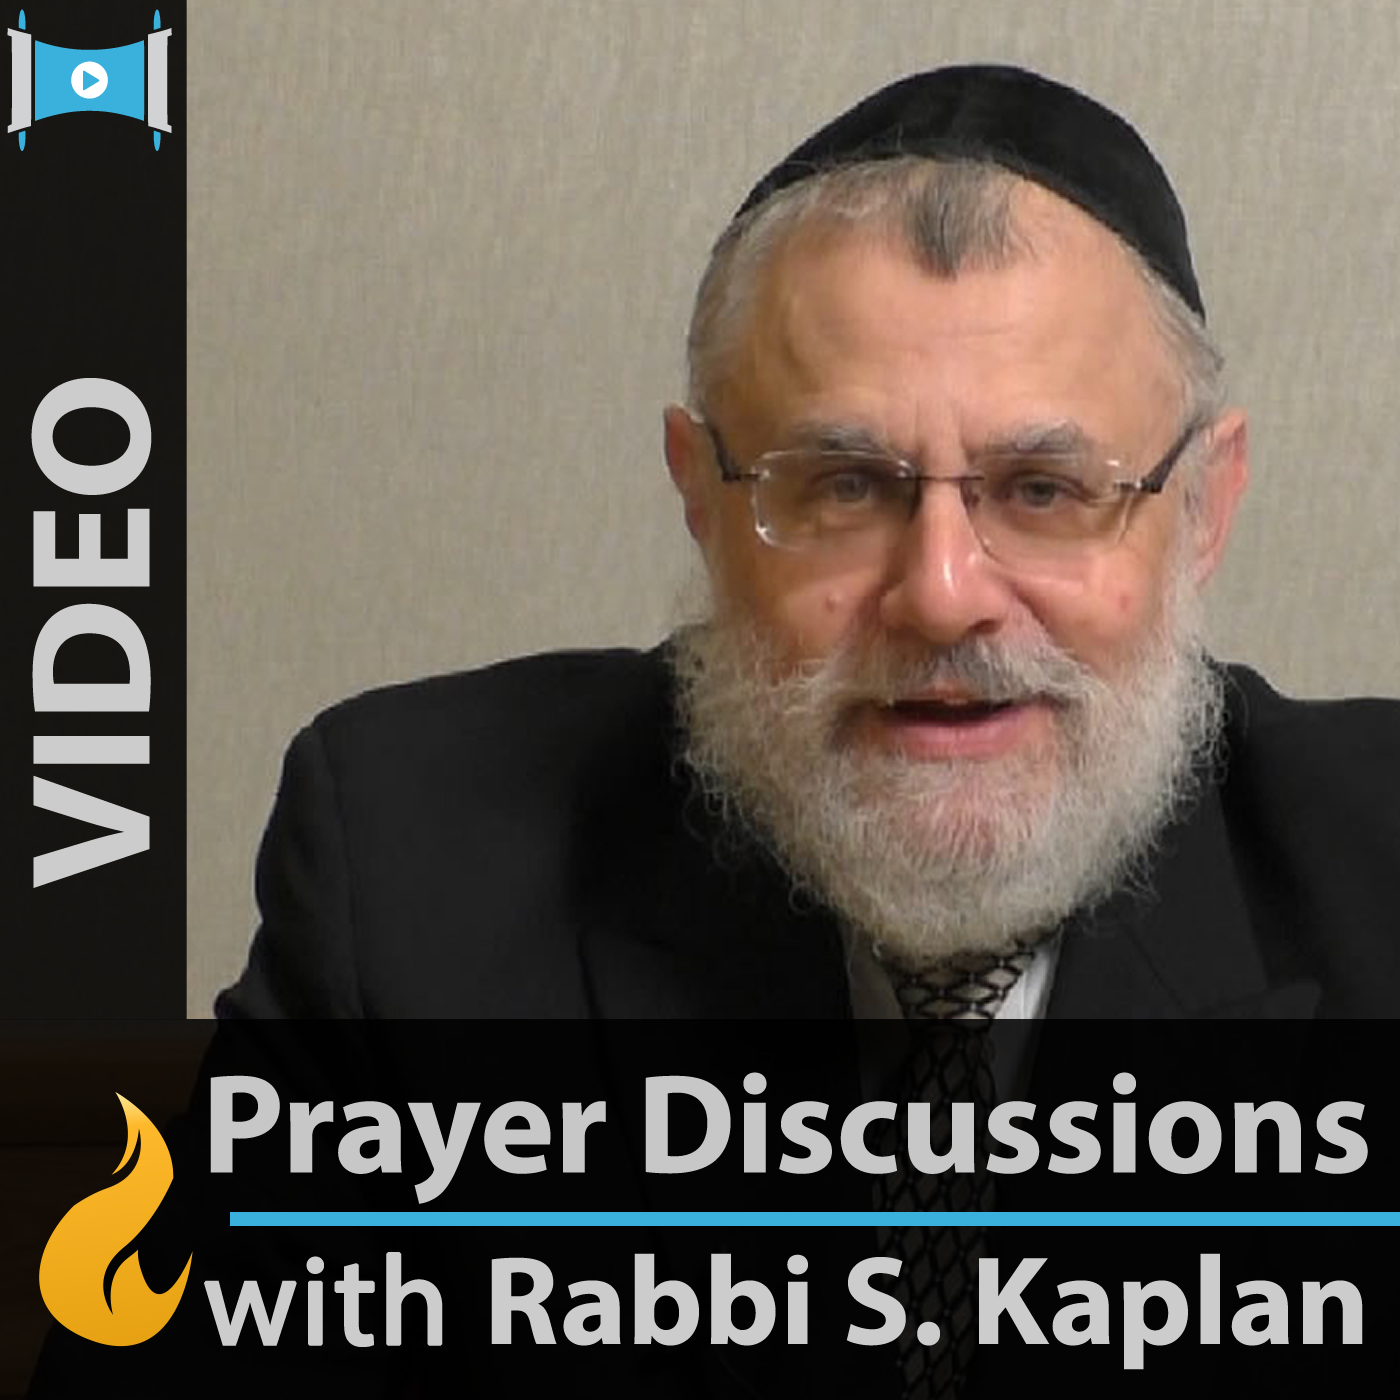 Discussions on Prayer (Video)